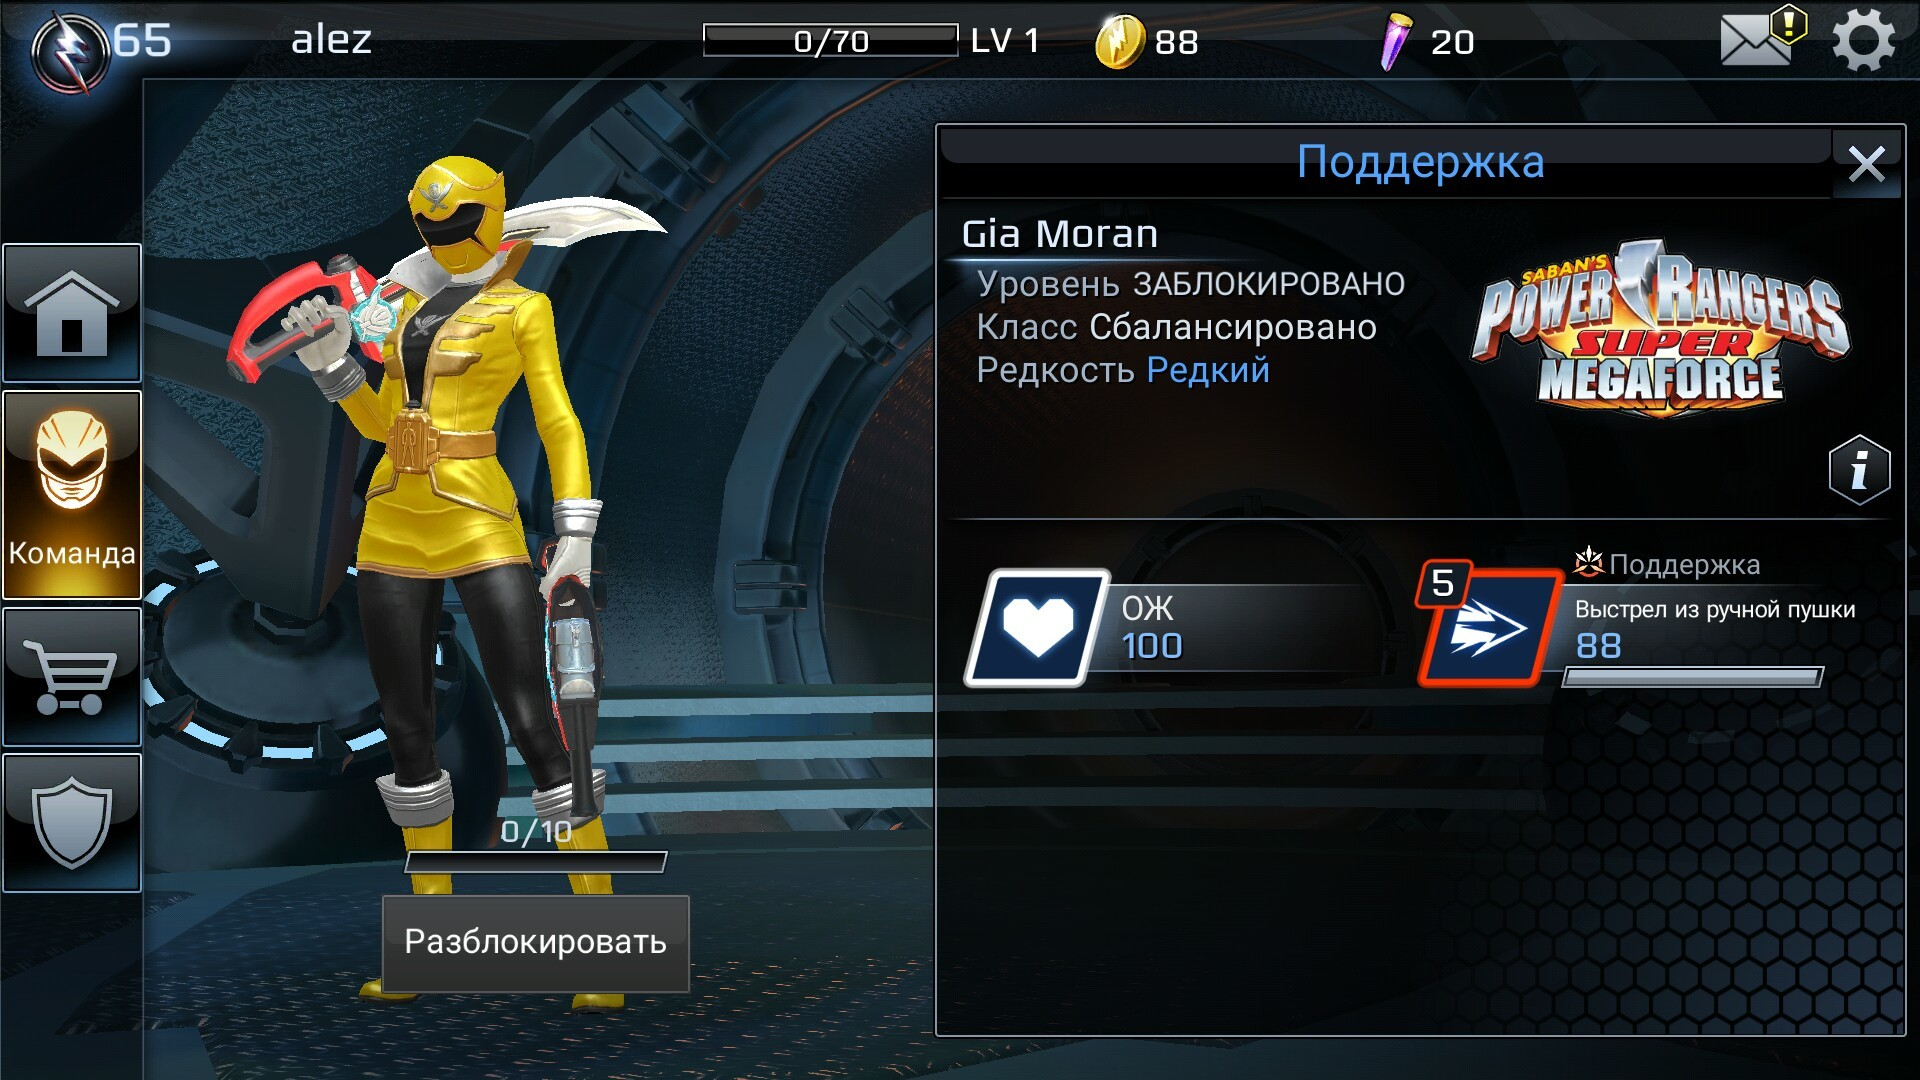 Room 8 studio screenshot 2017 03 24 18 24 35 398 com nway powerrangerslegacywars